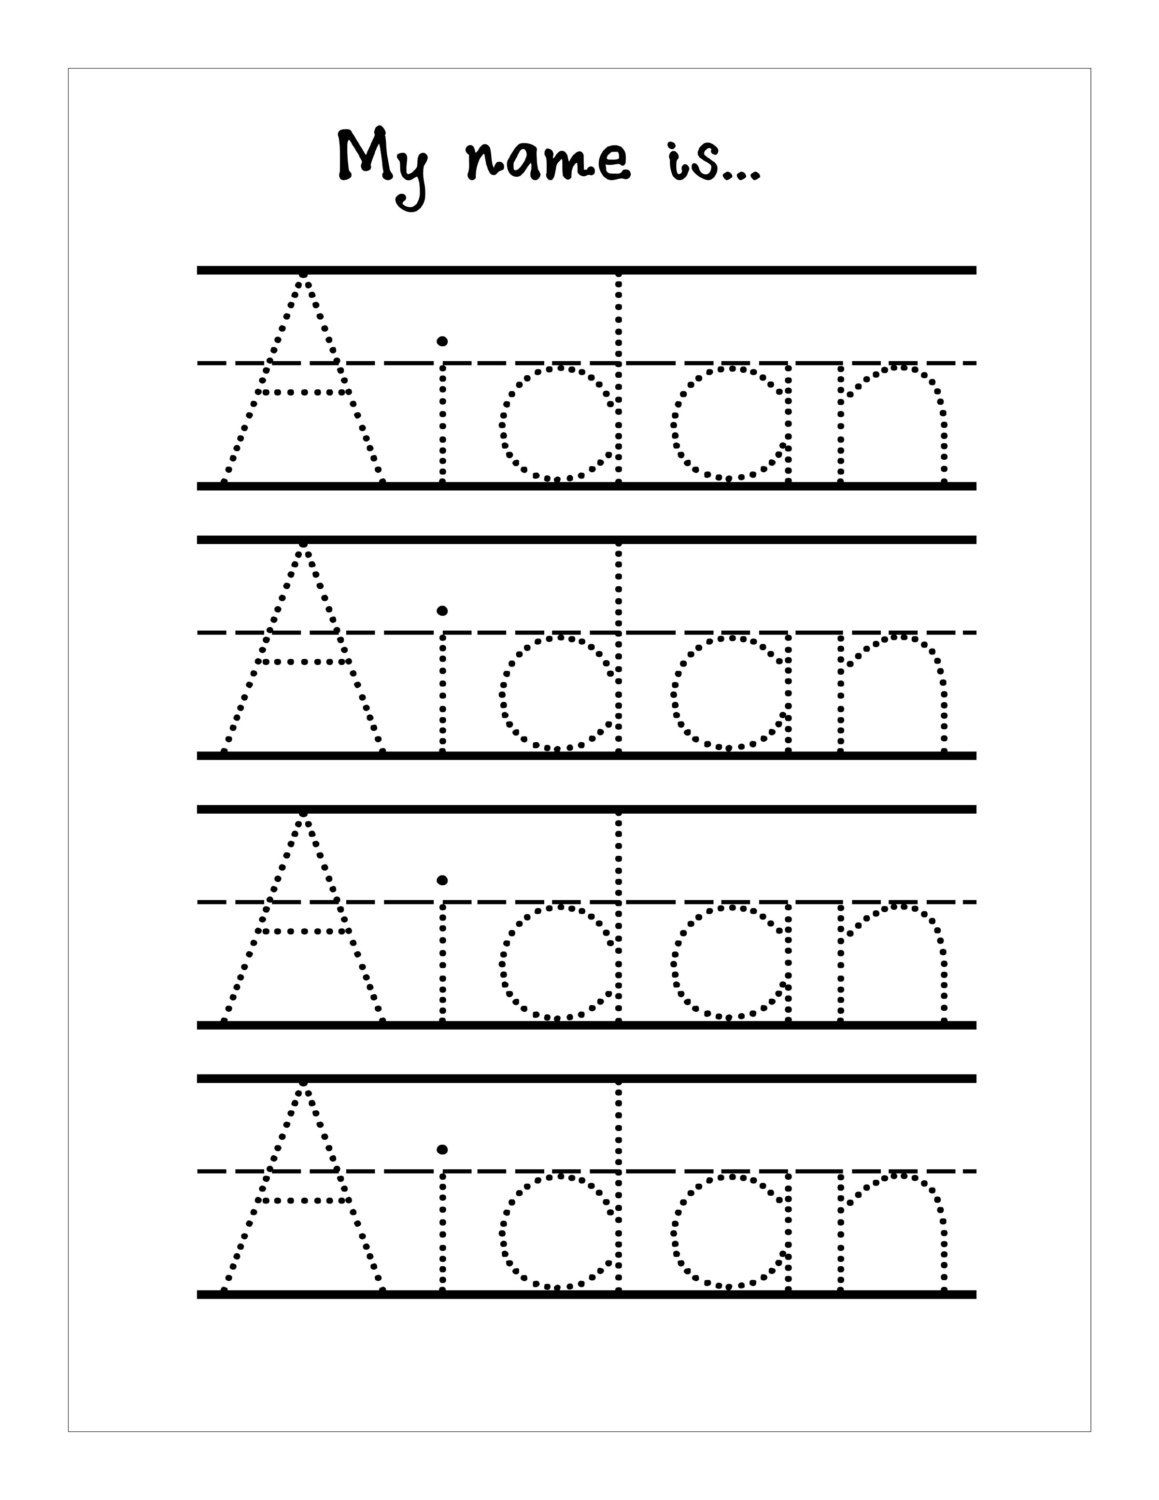 Traceable Names Worksheets | Name Tracing Worksheets, Free regarding Create A Name Tracing Printables